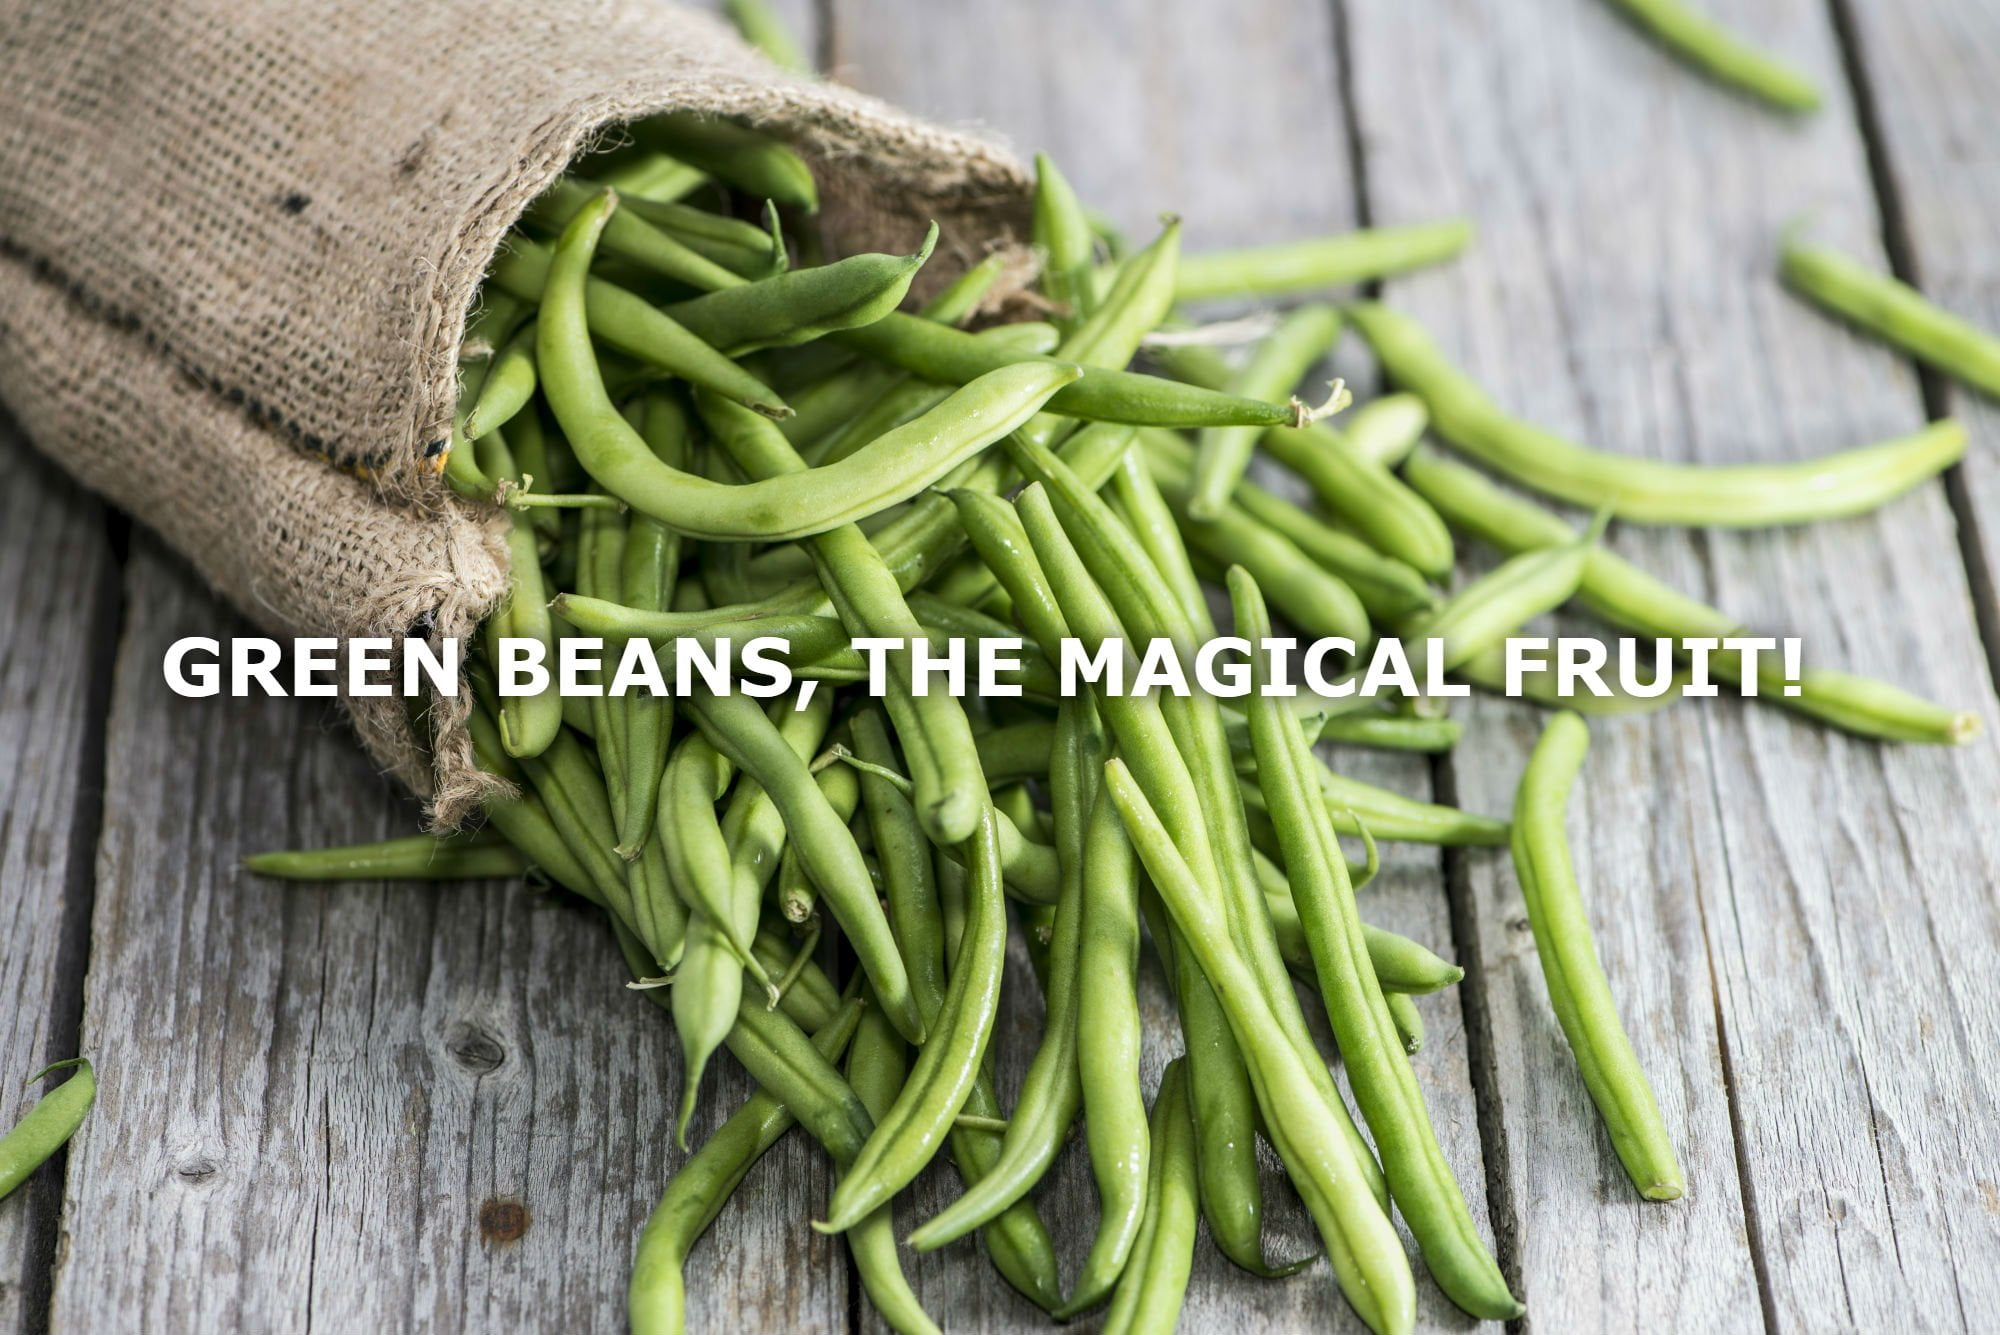 GREEN BEANS, THE MAGICAL FRUIT!